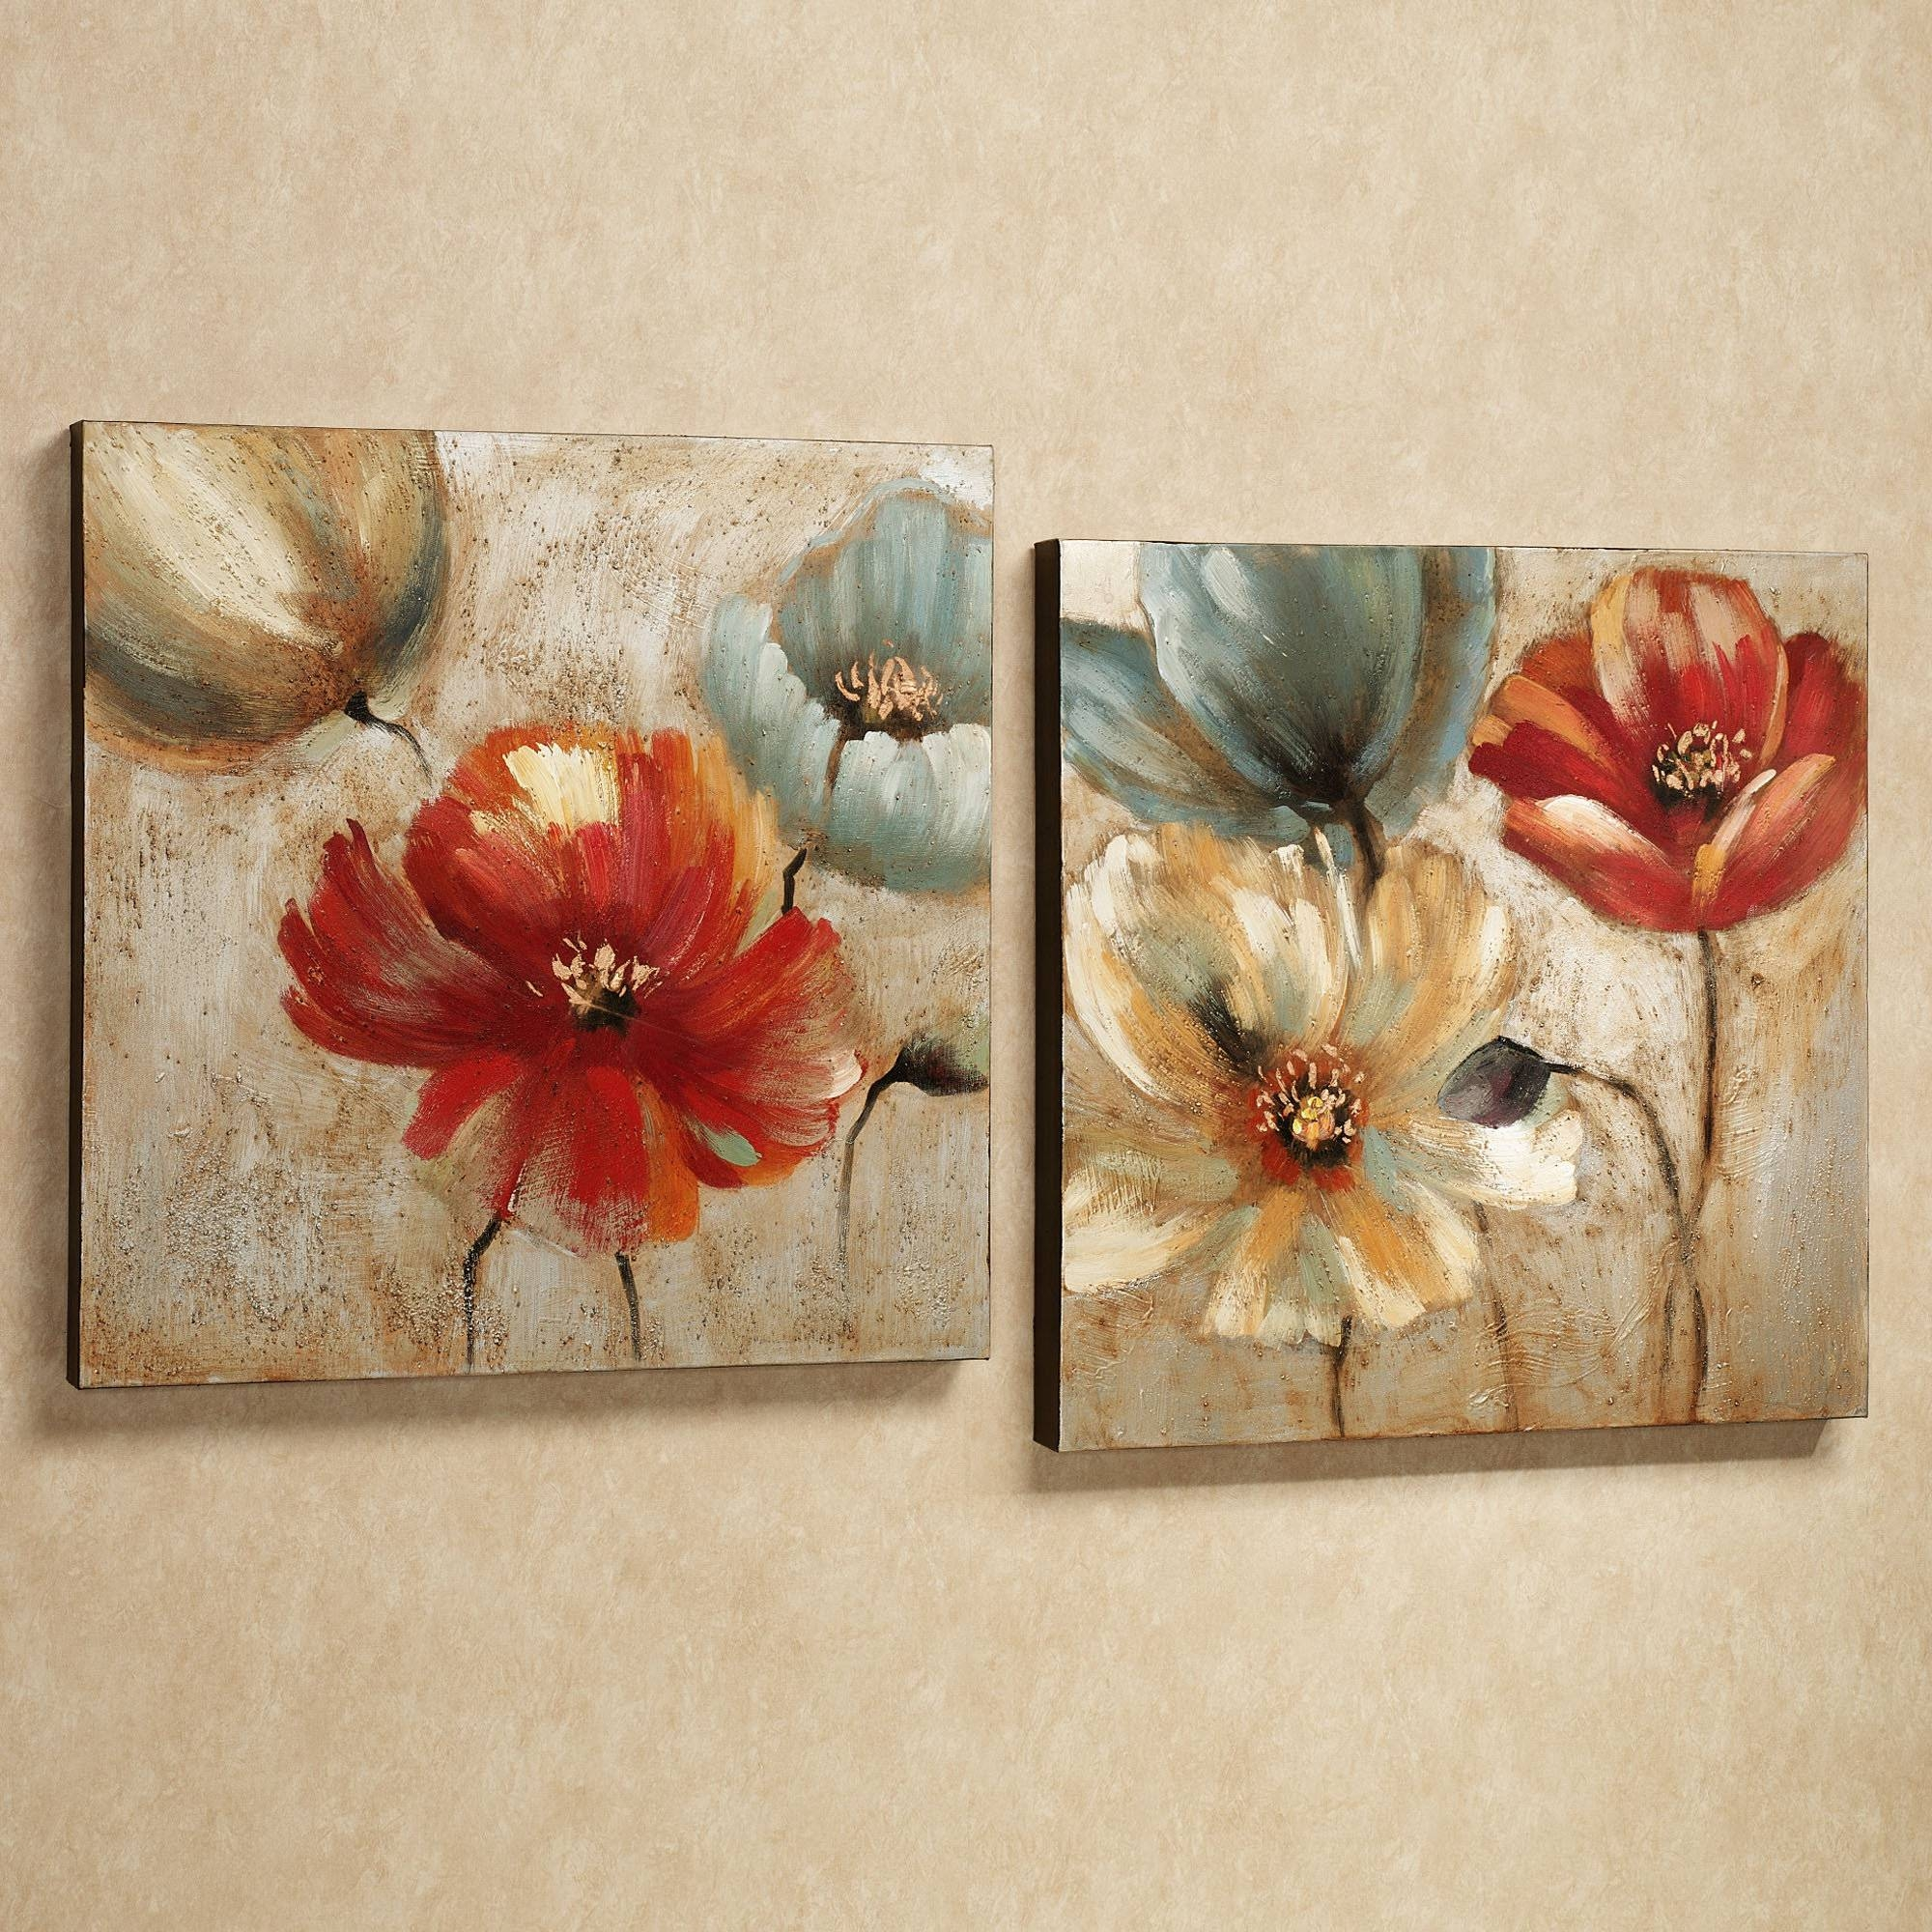 Wall Art Designs: Canvas Floral Wall Art Flowers Paintings Large In Most Popular Large Canvas Wall Art Sets (View 9 of 15)